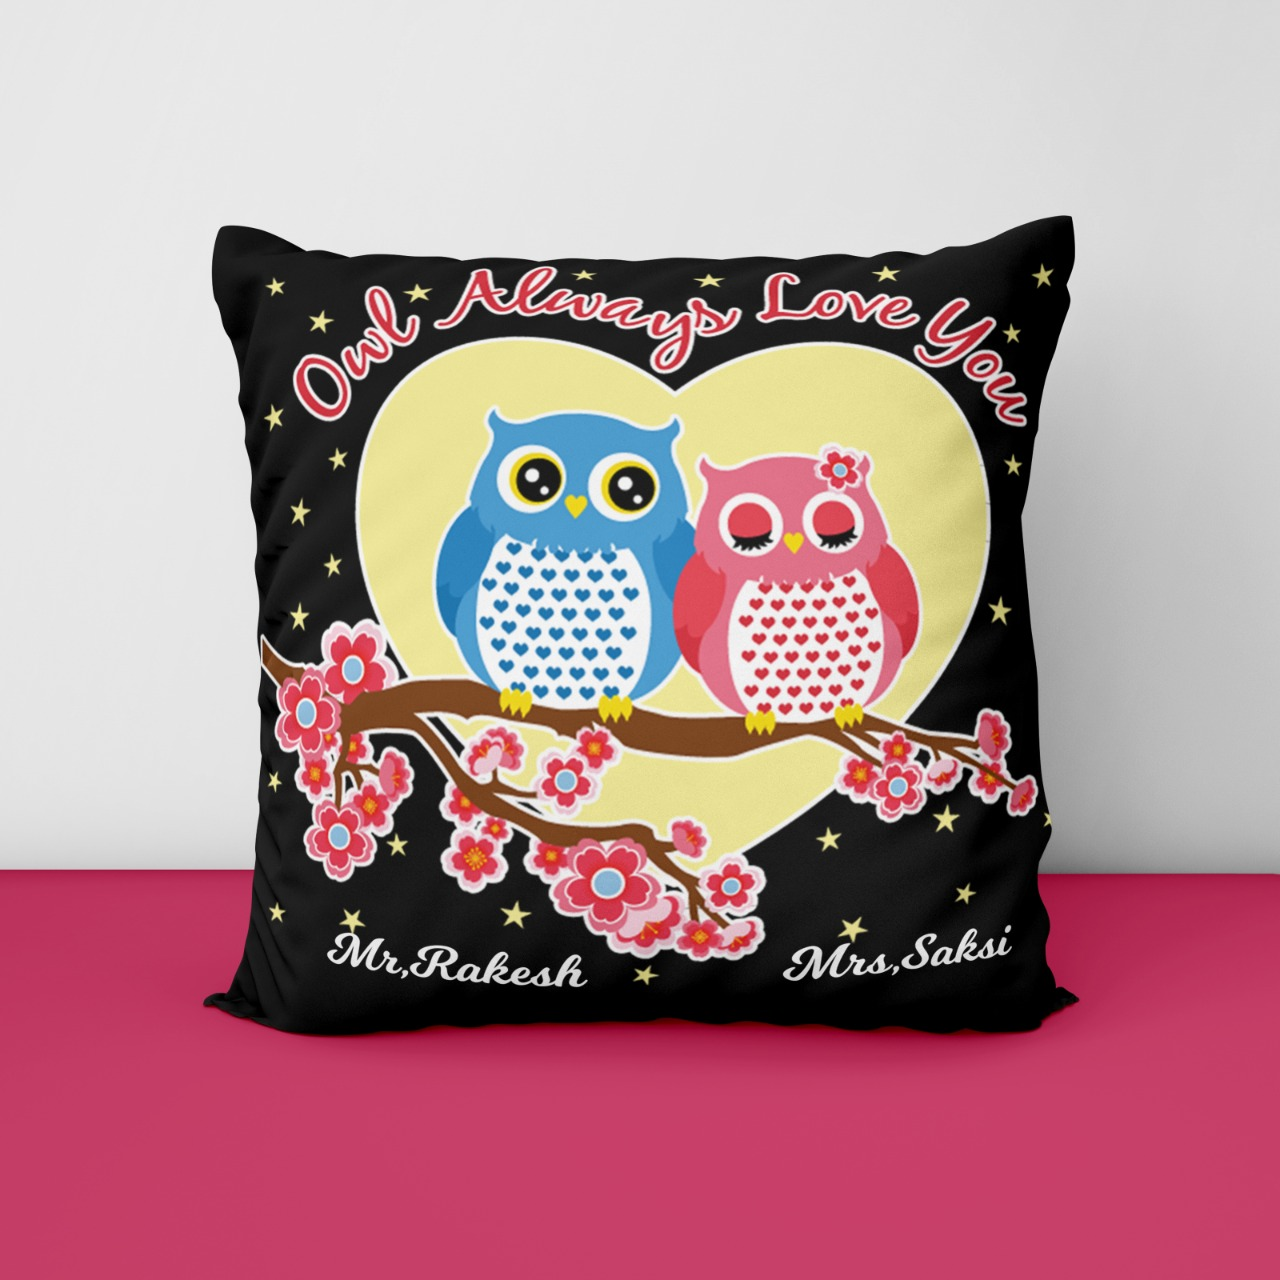 Always Love You Personalized Cushion